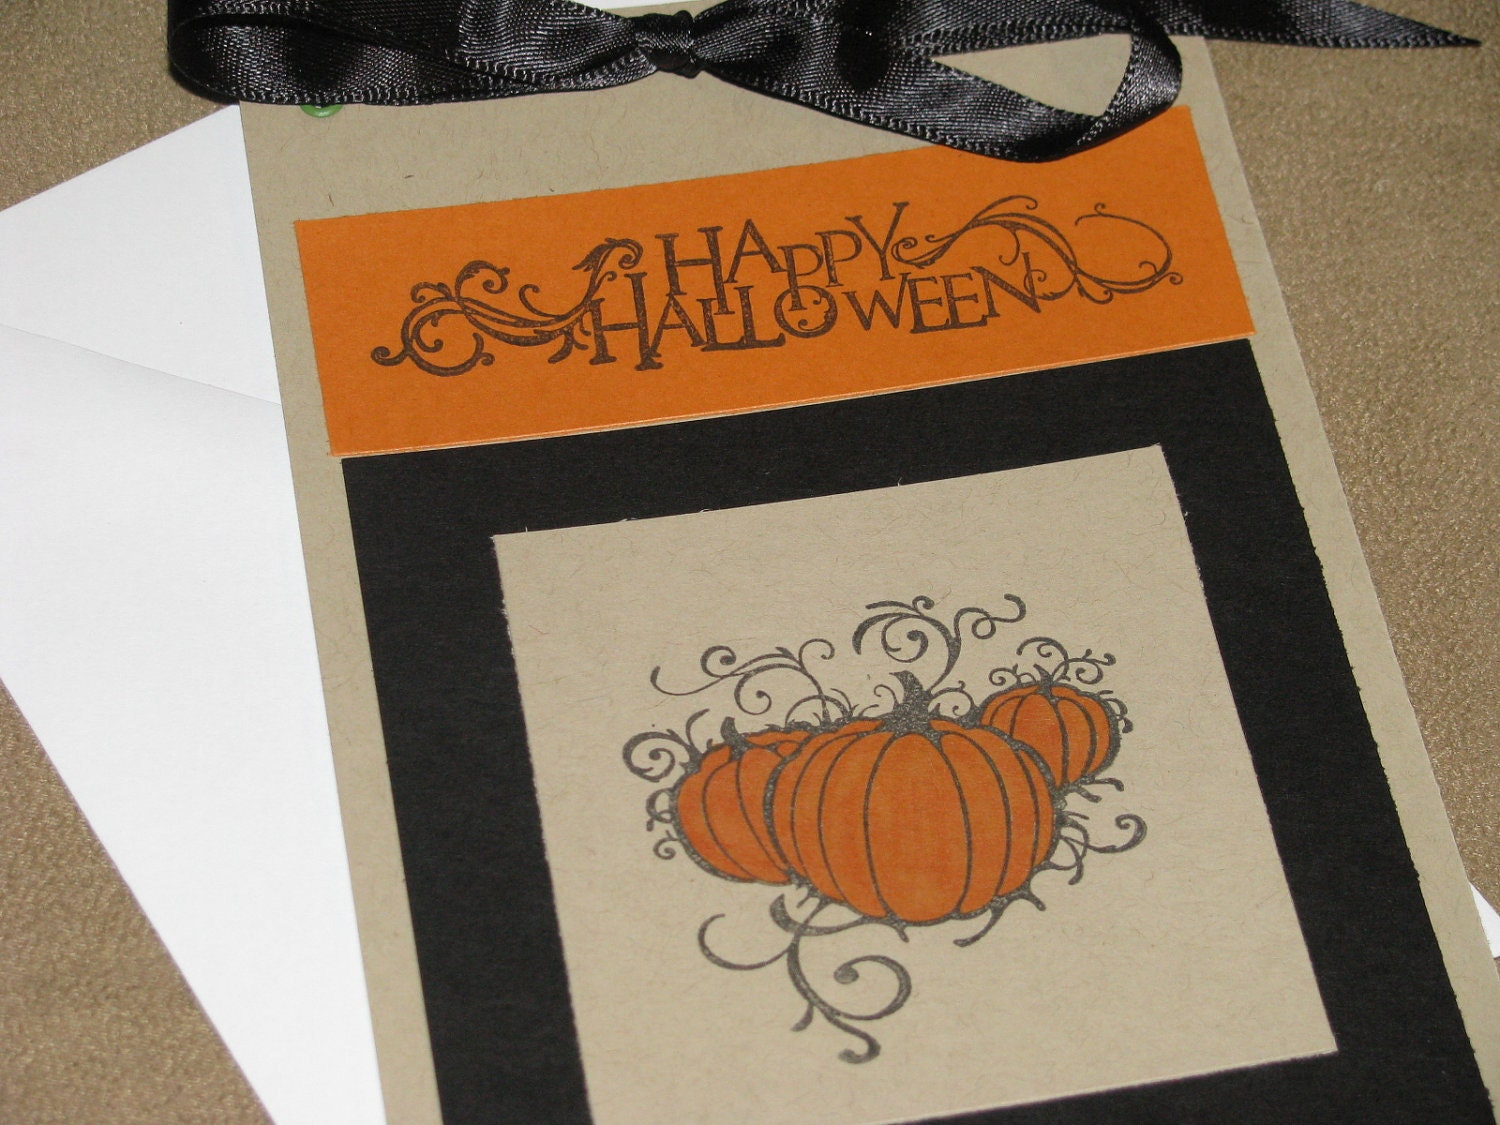 Happy Halloween Blank Greeting Card with Pumpkins